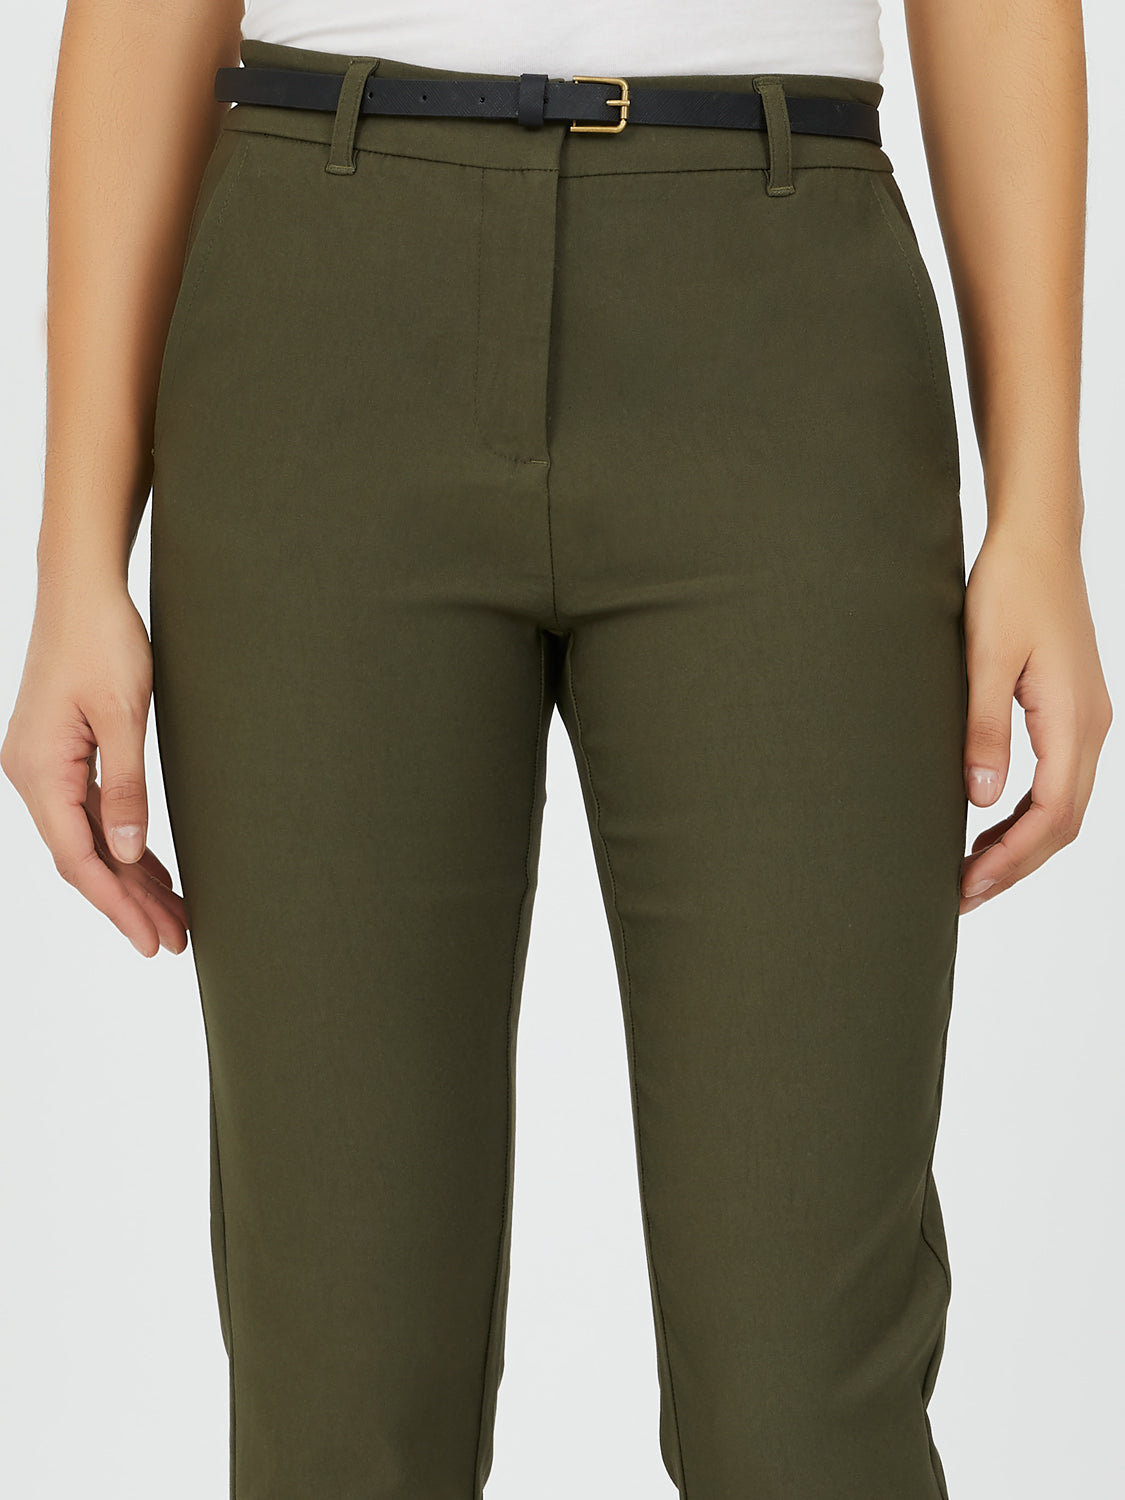 Twill Ankle Length Pant